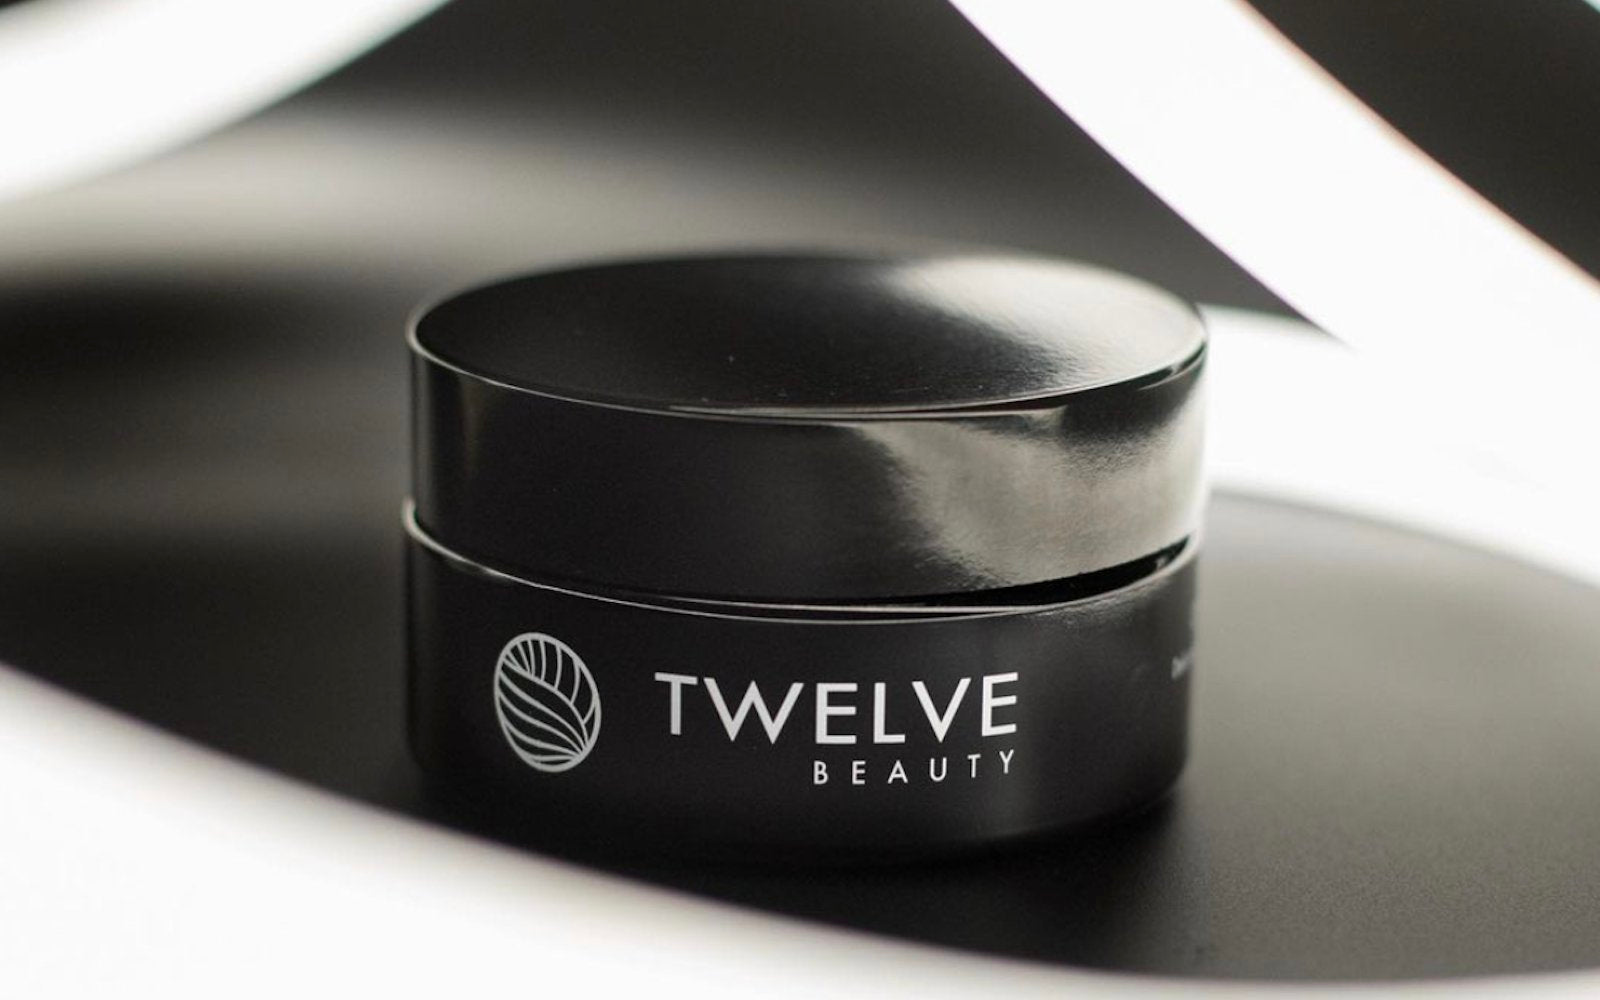 Twelve Beauty | Ambrosia | Hong Kong